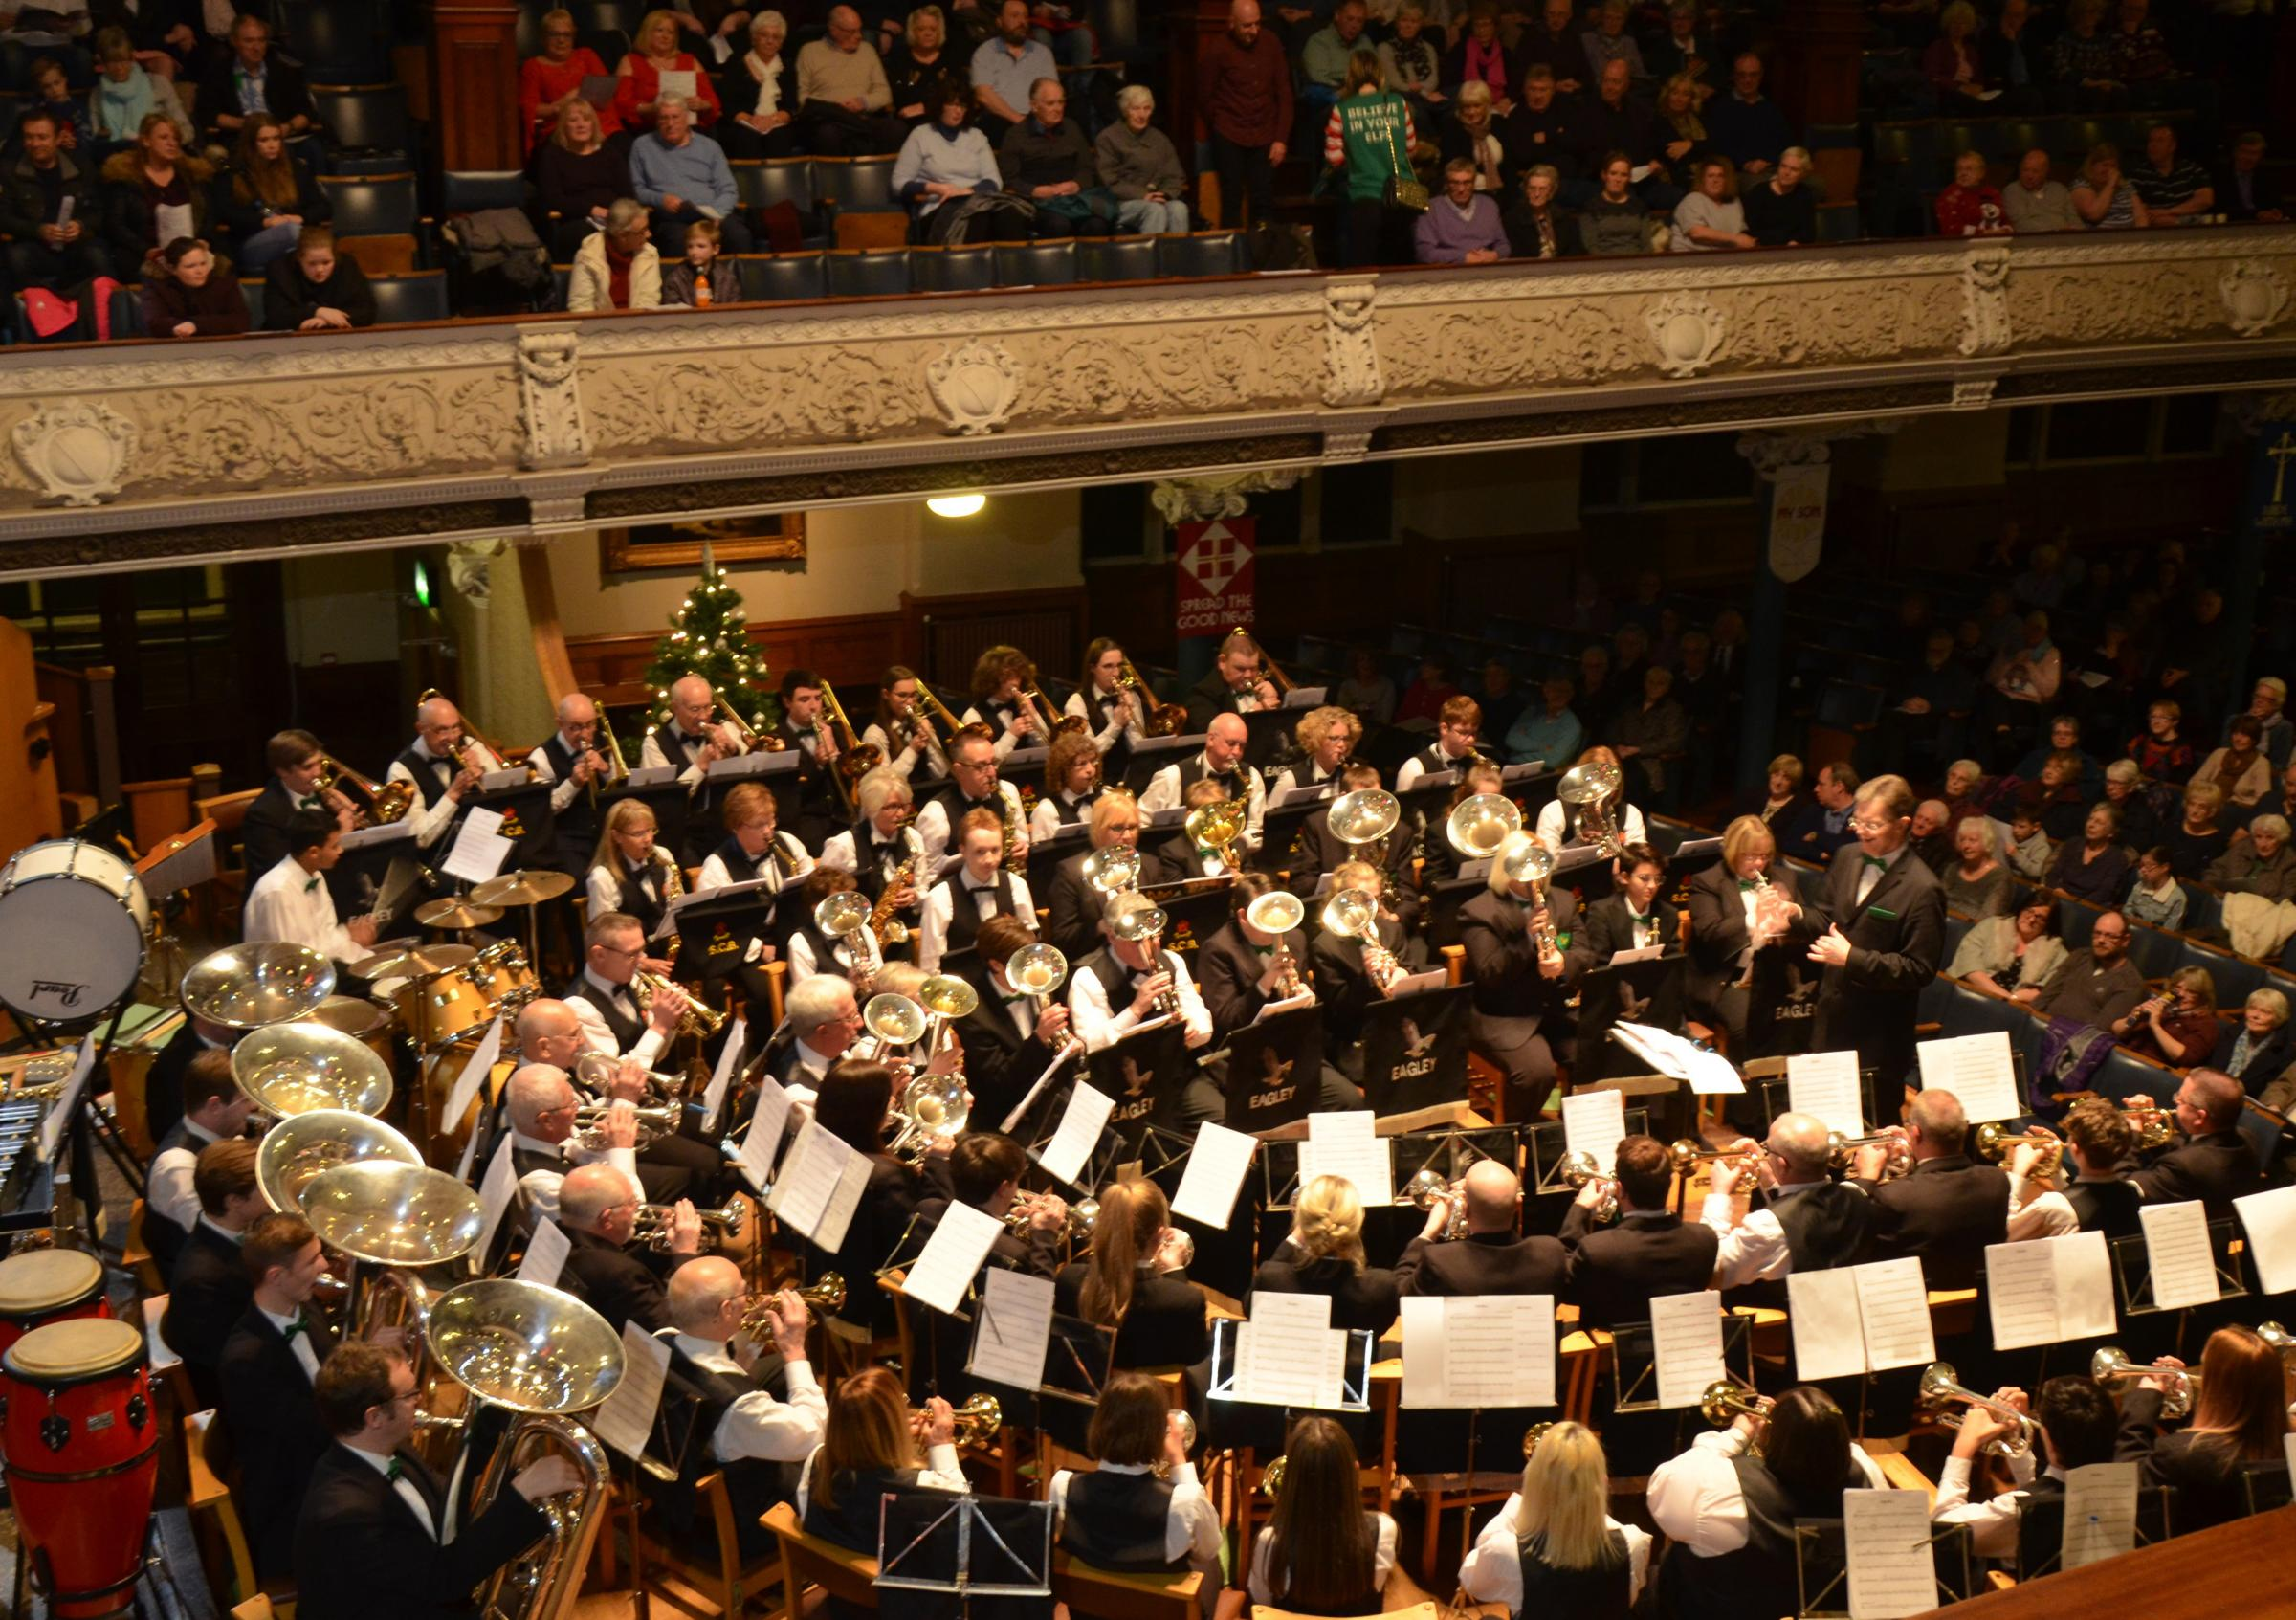 Eagley Band perform at the Victoria Hall, Christmas 2017